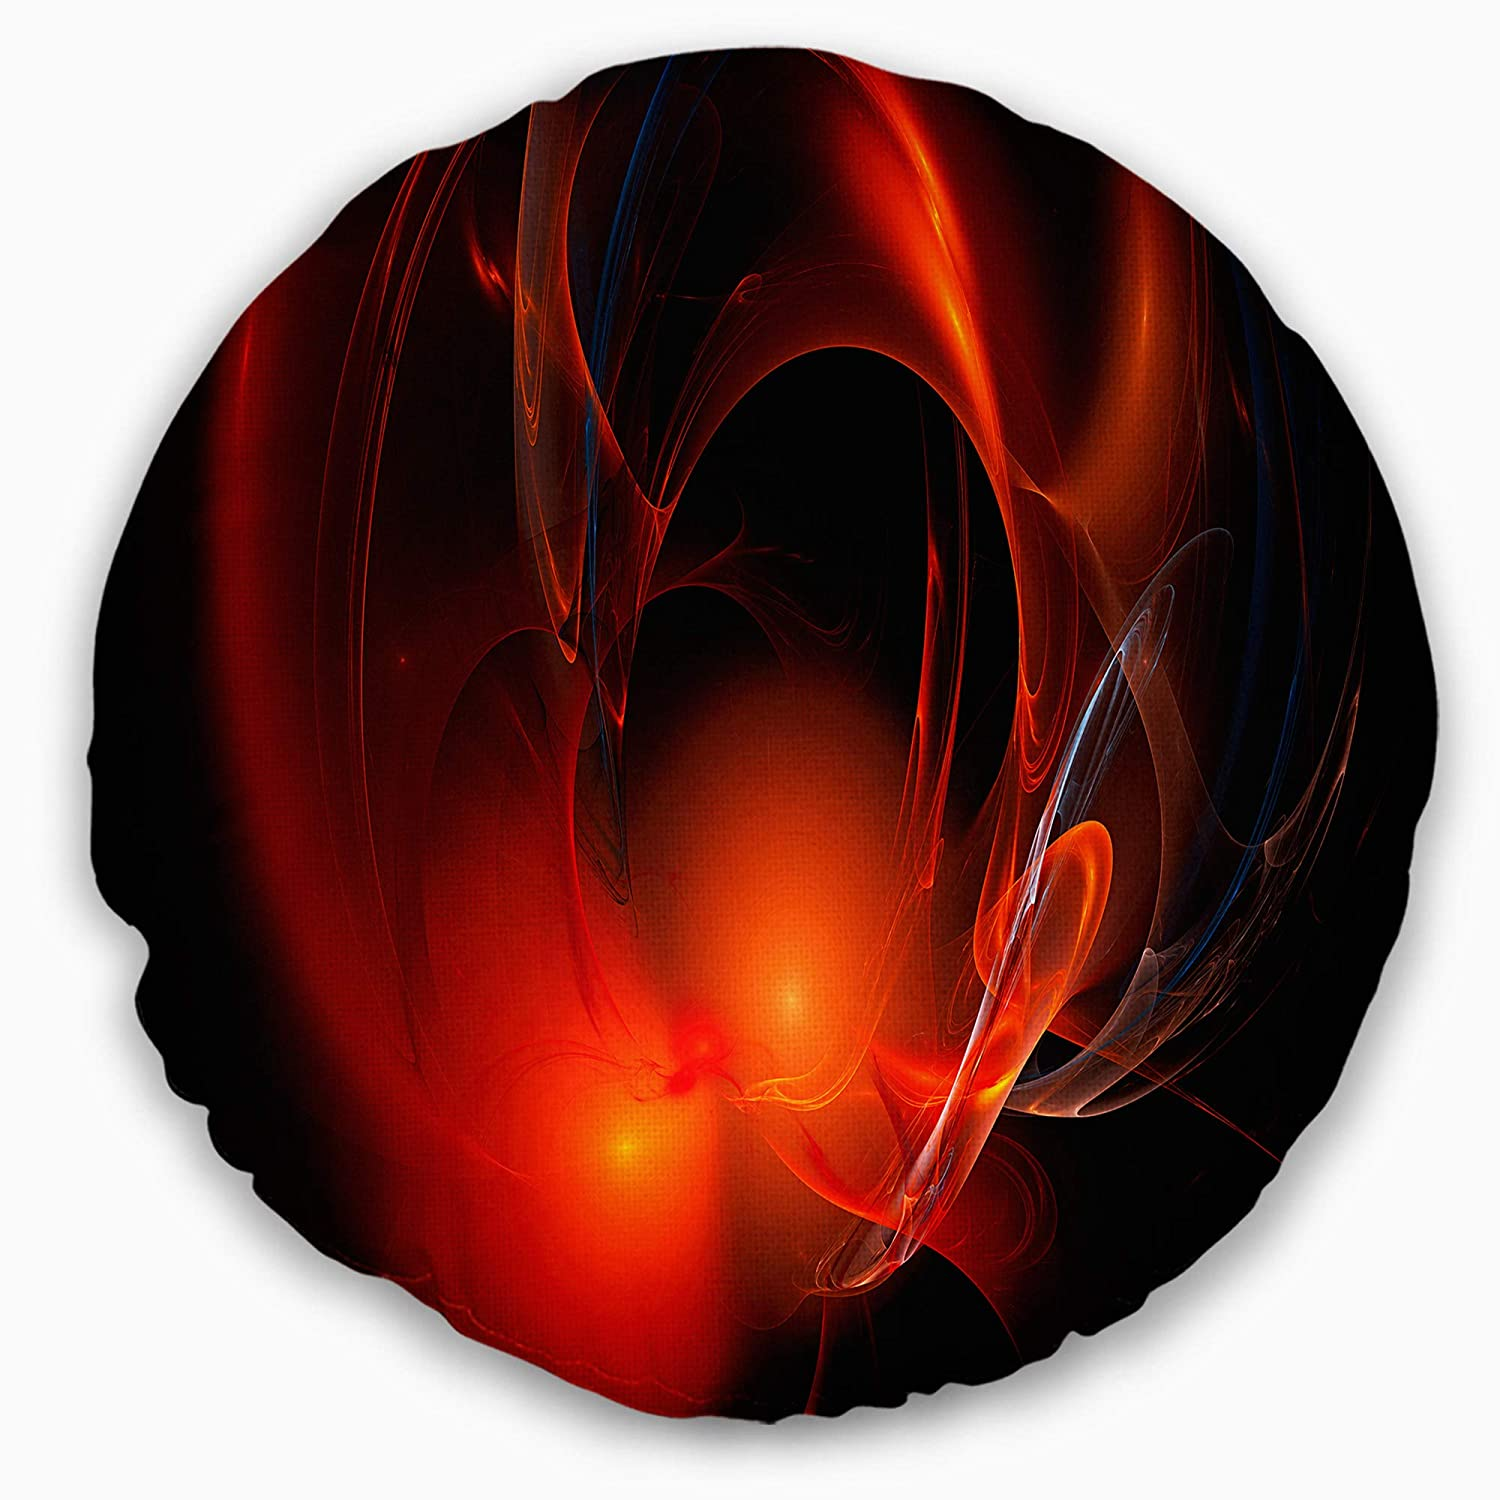 Designart CU16277-16-16-C Red Galactic Nebula on Black Abstract Round Cushion Cover for Living Room Insert Printed On Both Side Sofa Throw Pillow 16